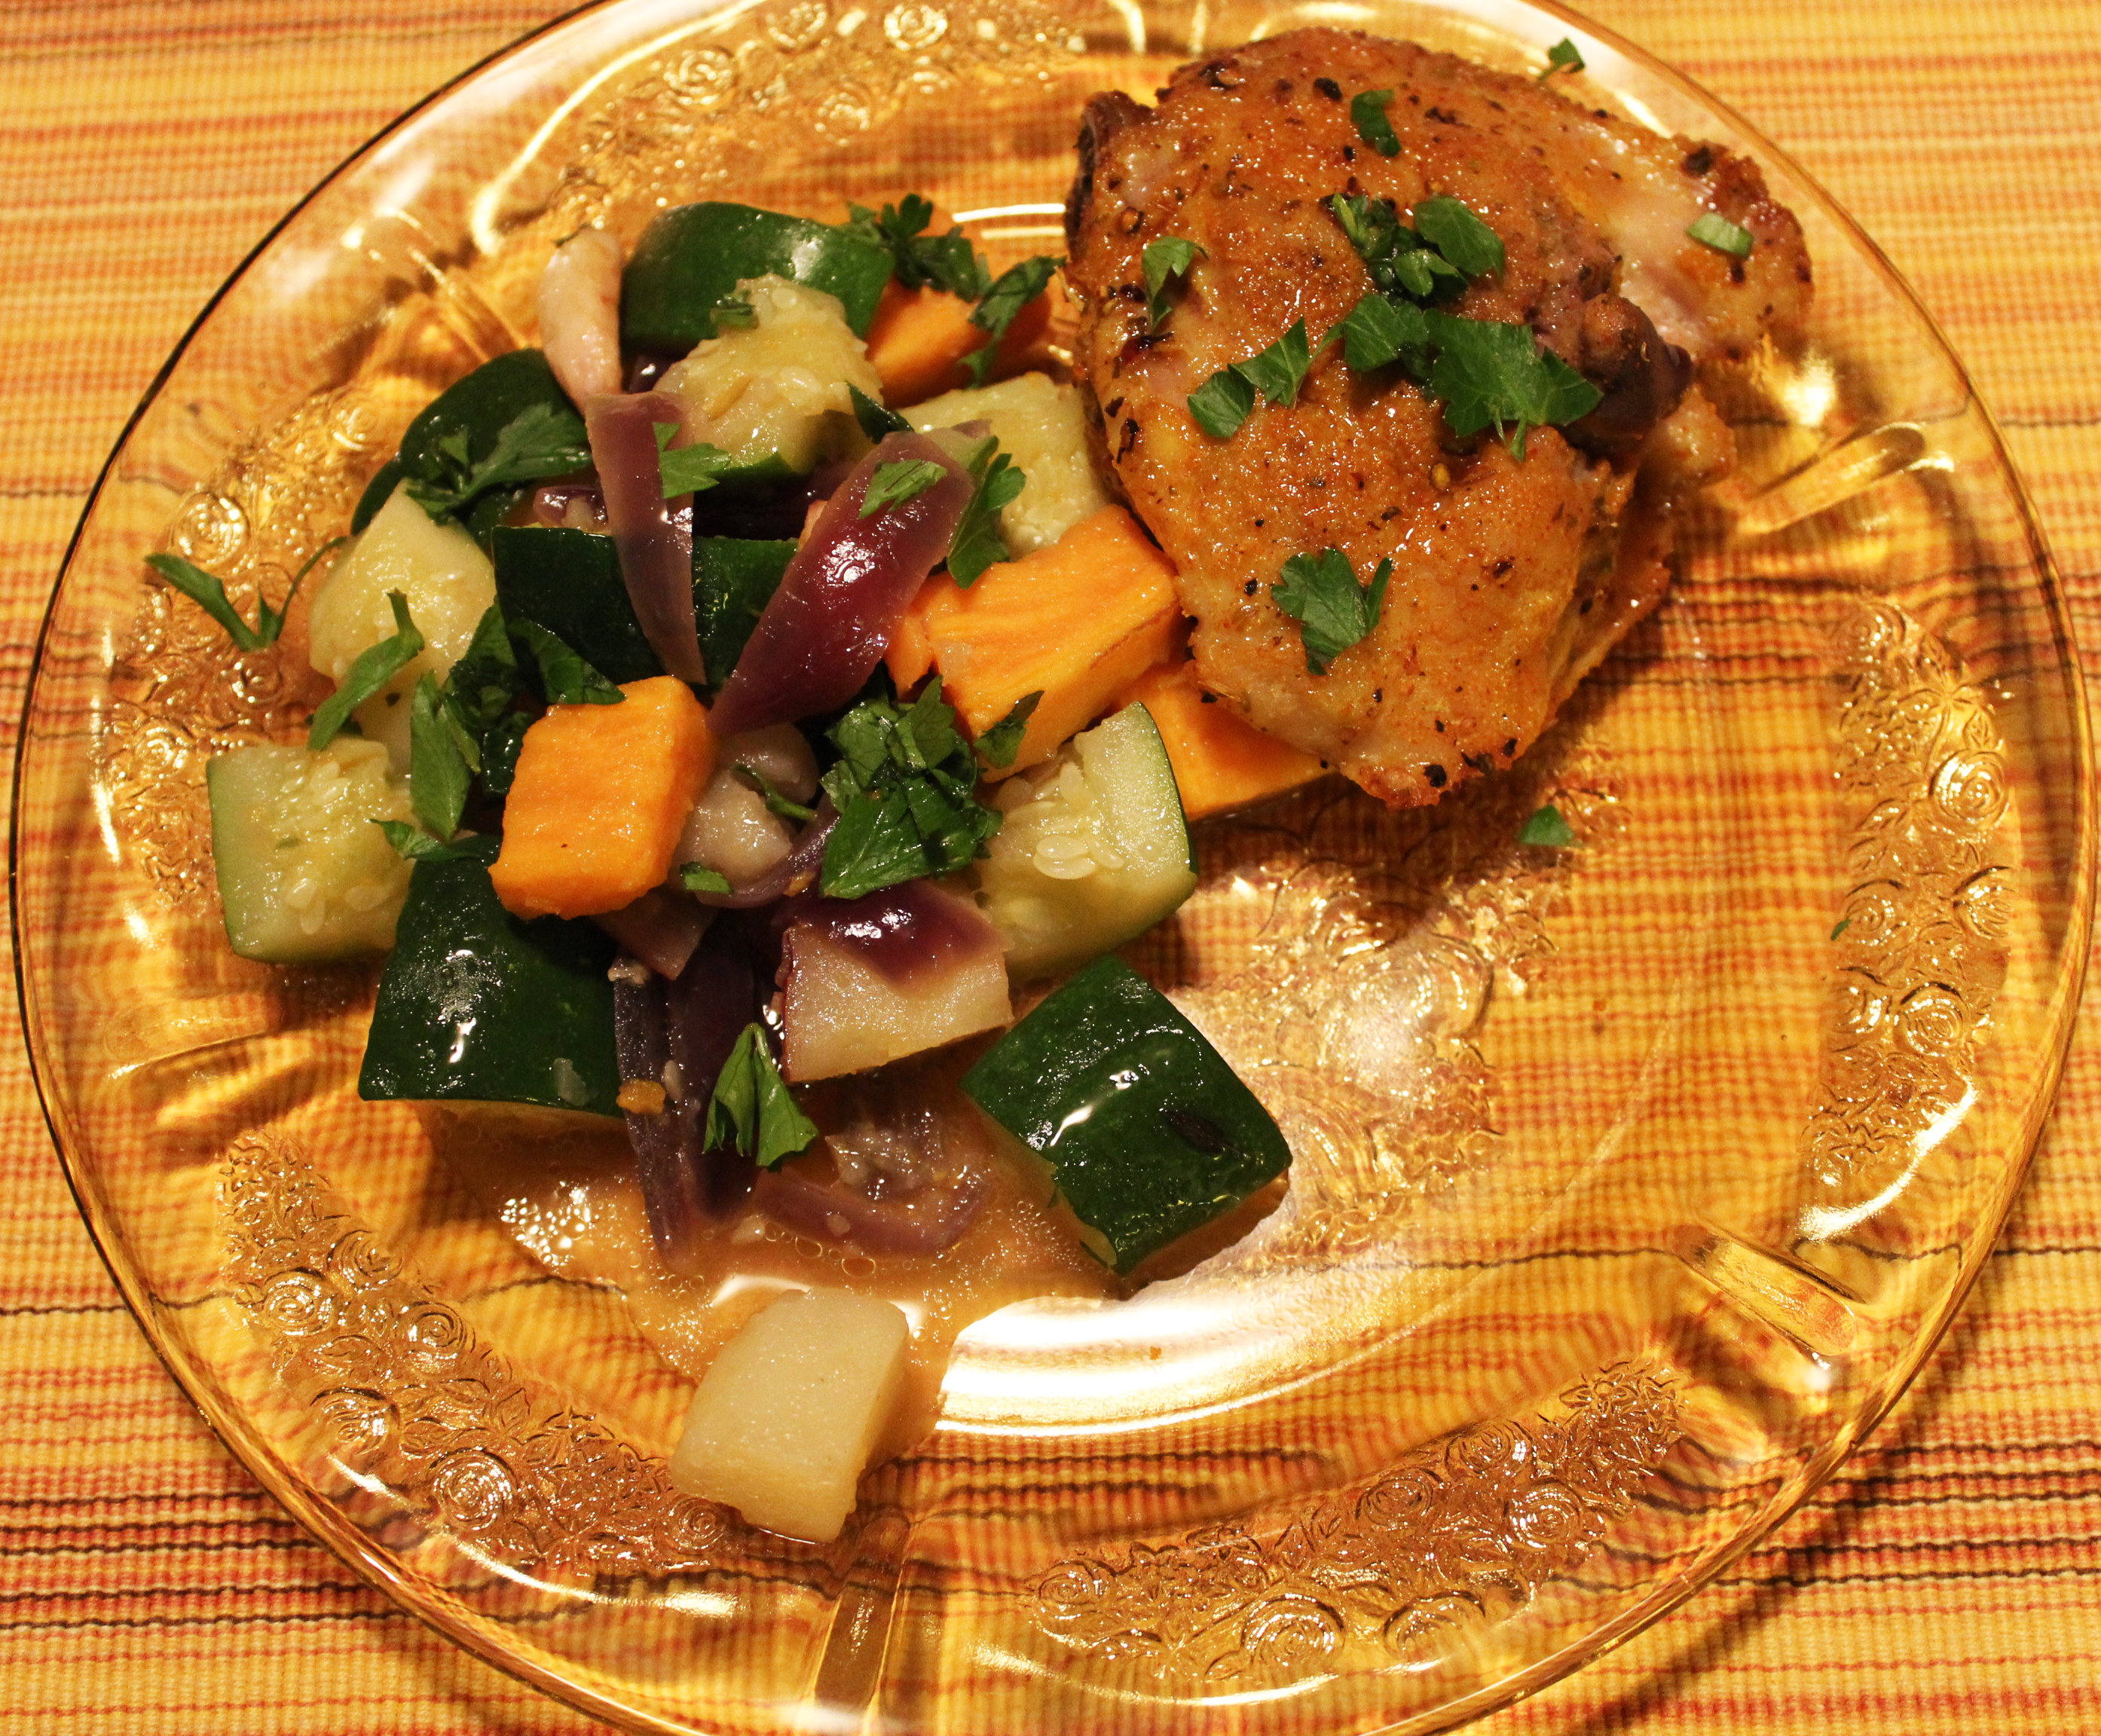 roasted chicken thighs and steamed vegetables